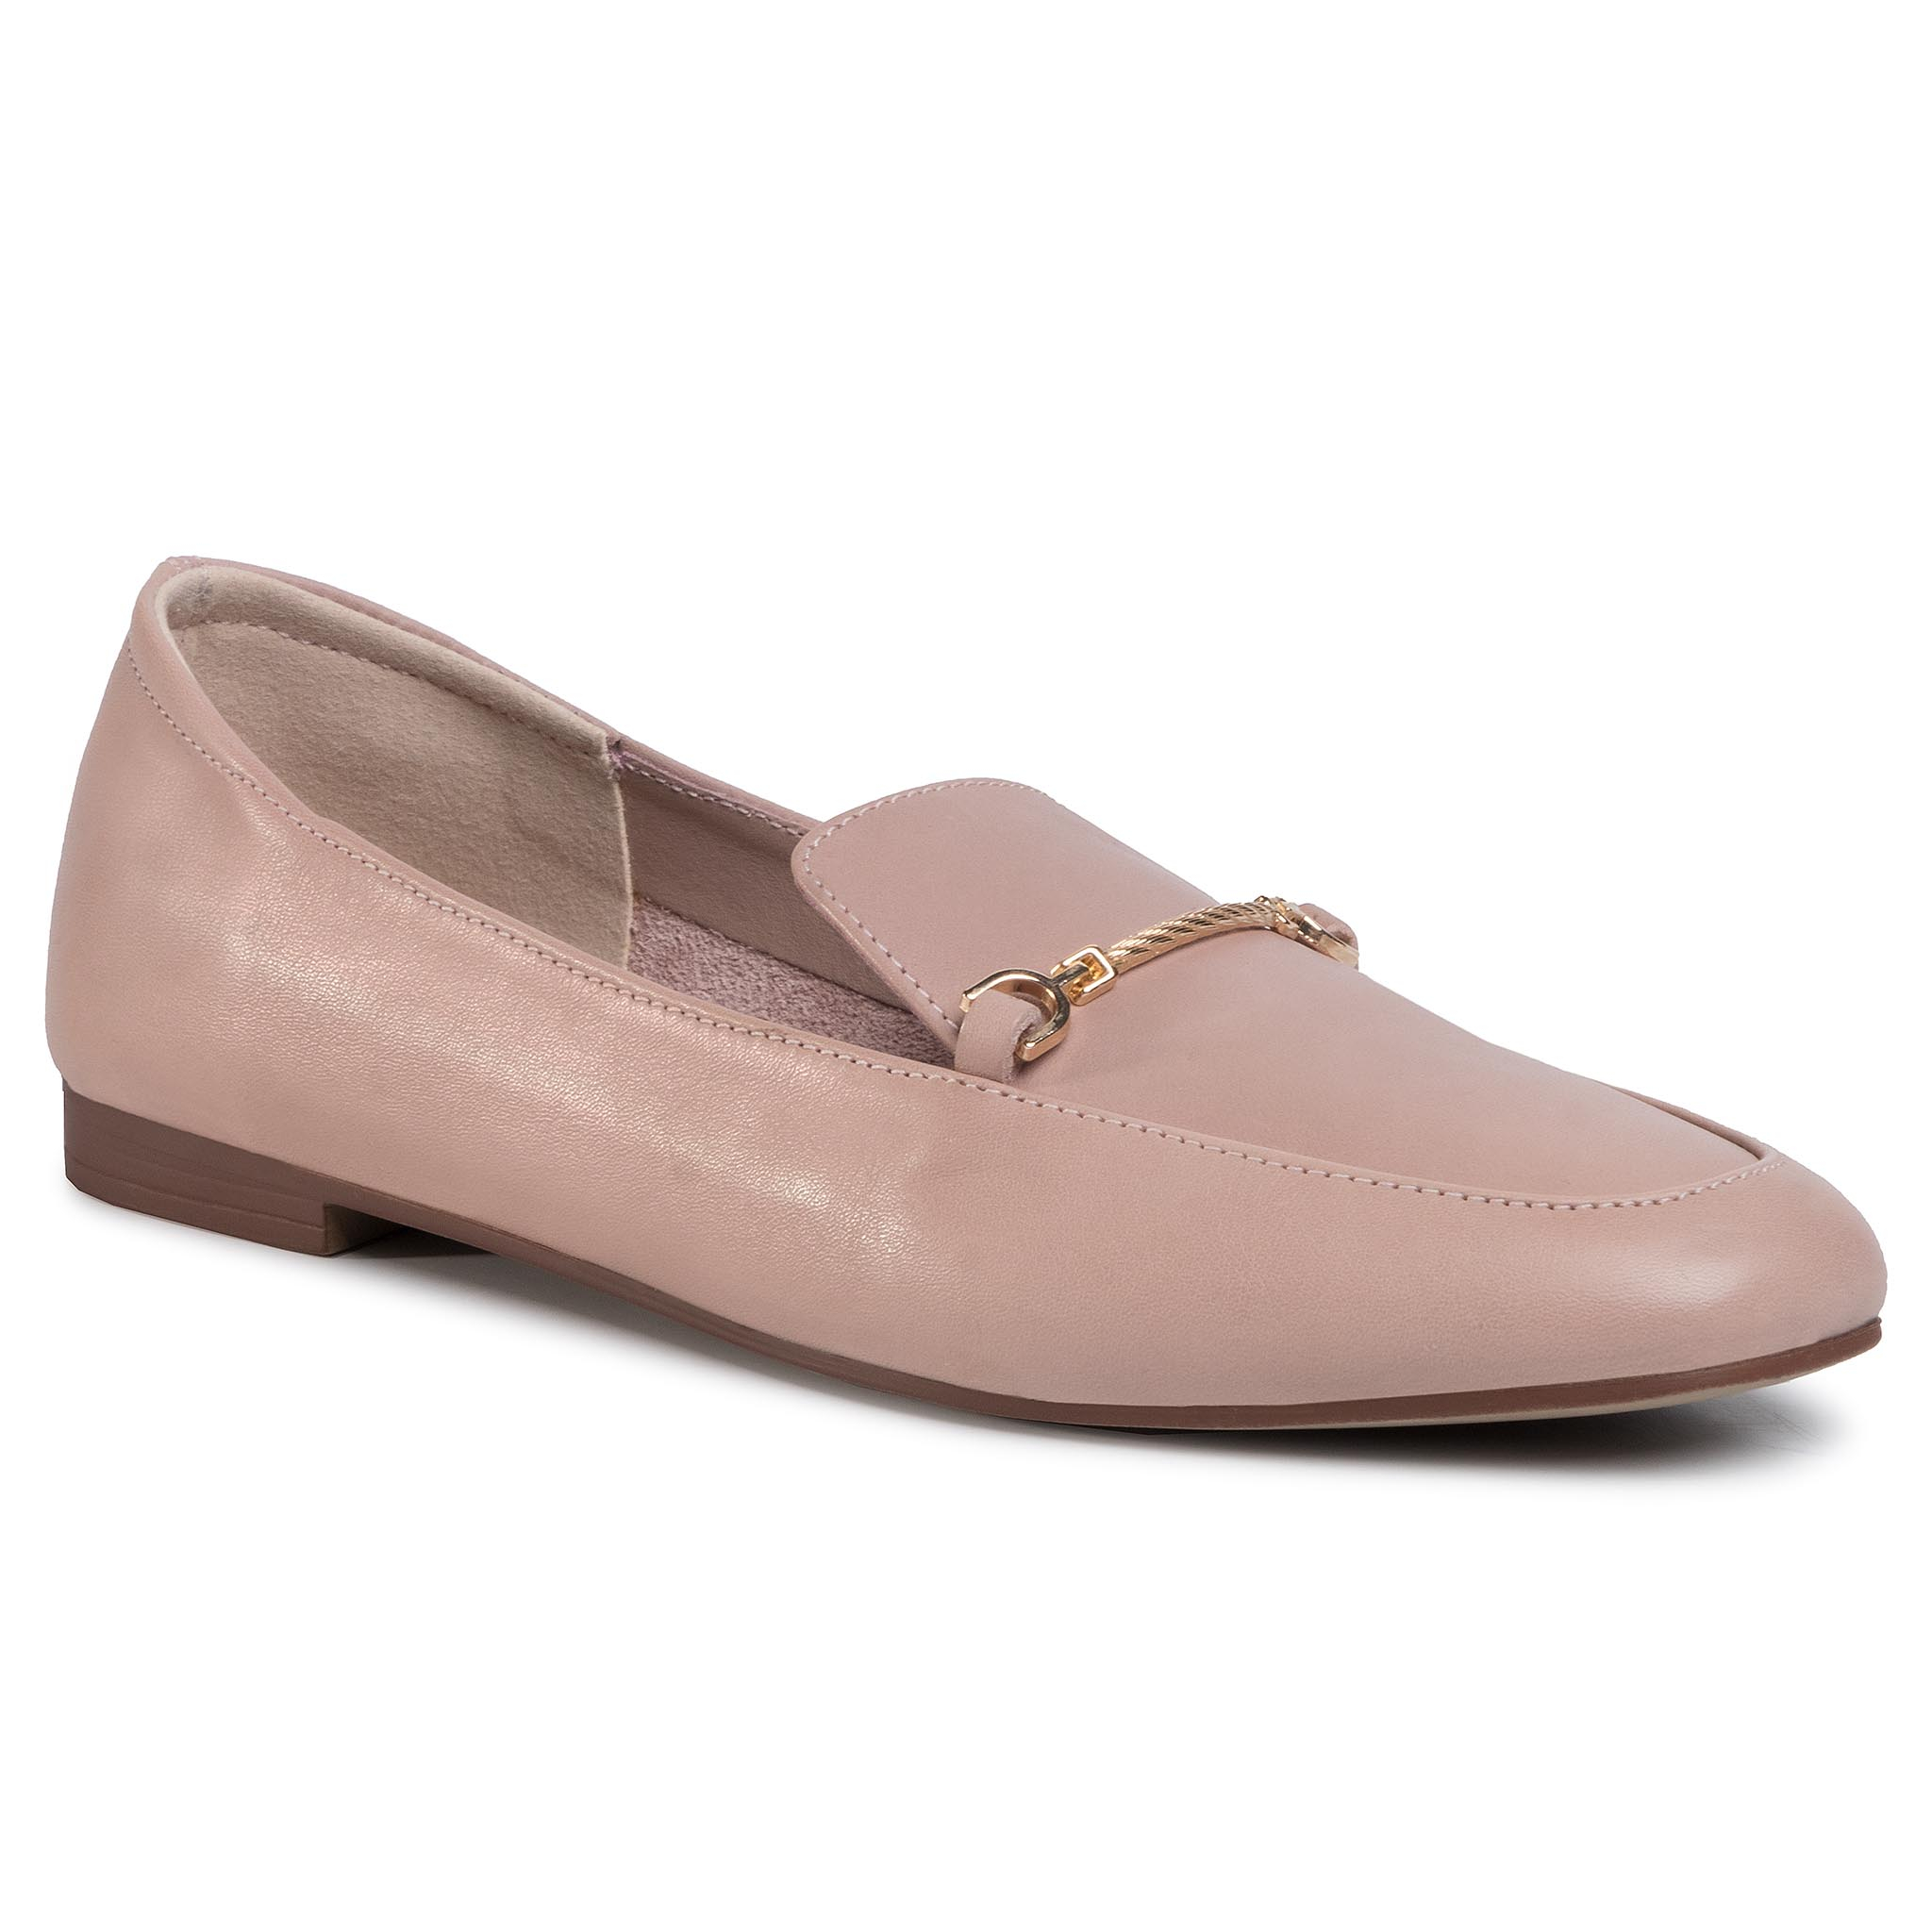 Lords GINO ROSSI - P164 Pink